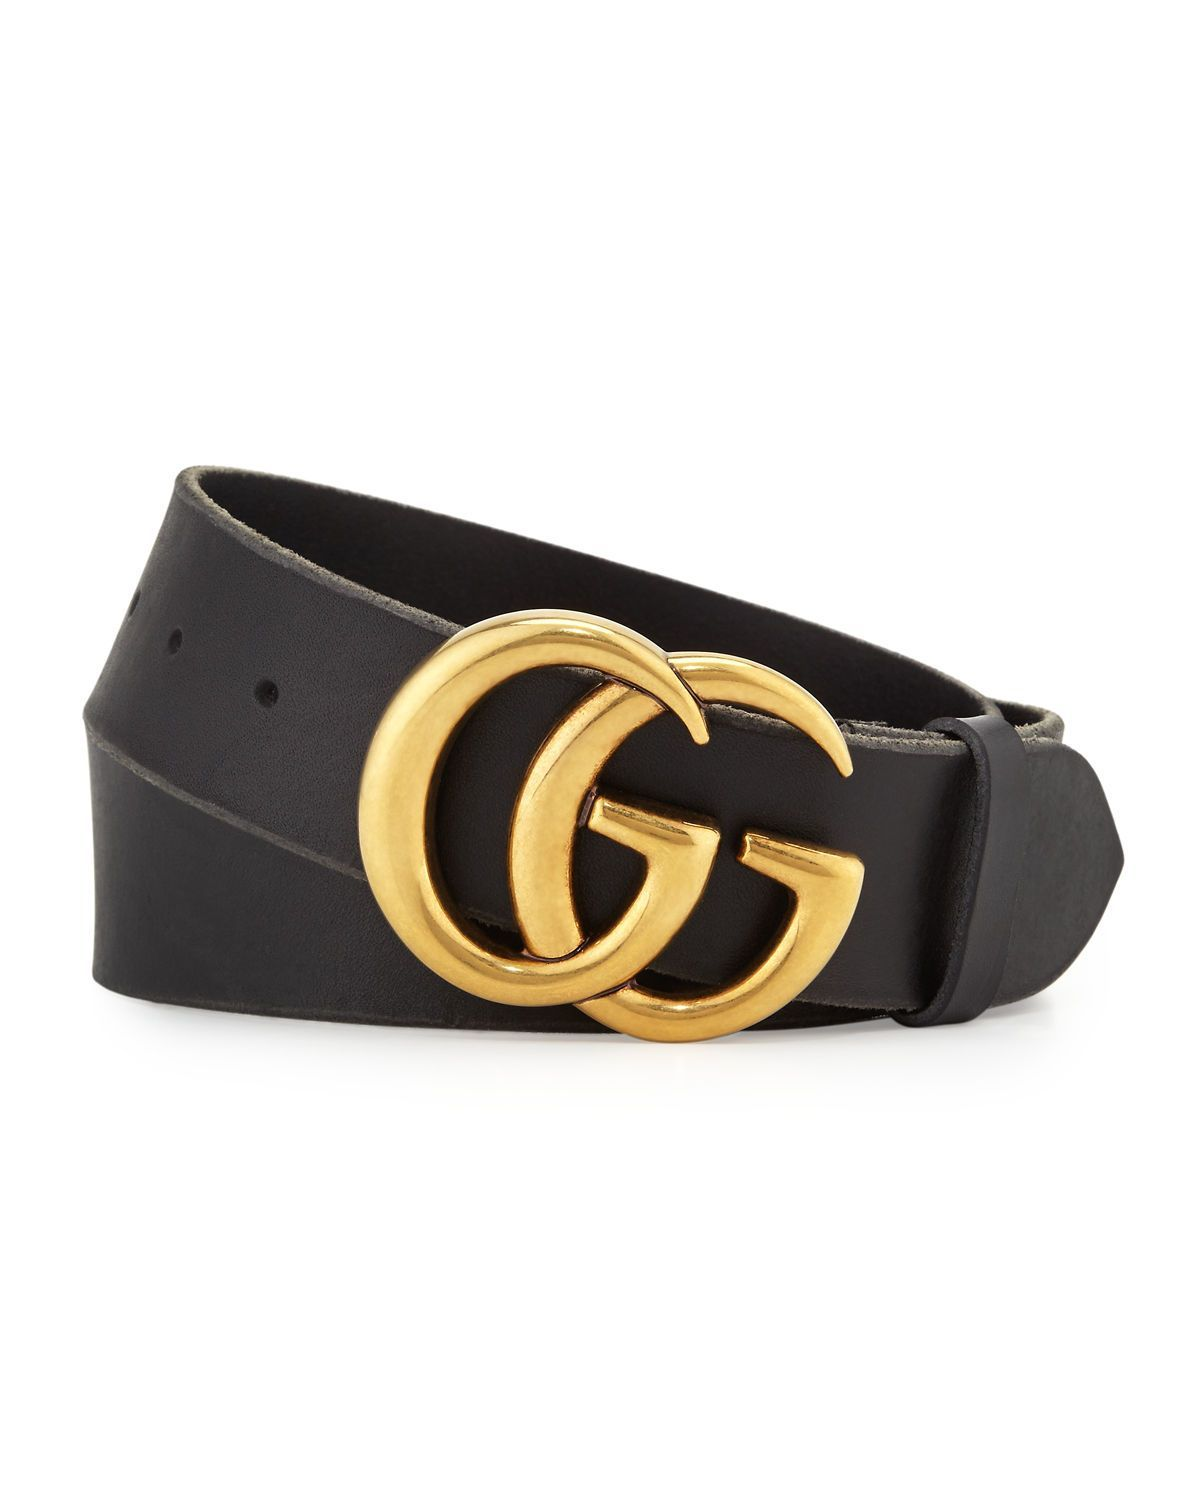 men 39 s leather belt with double g buckle smooth leather. Black Bedroom Furniture Sets. Home Design Ideas